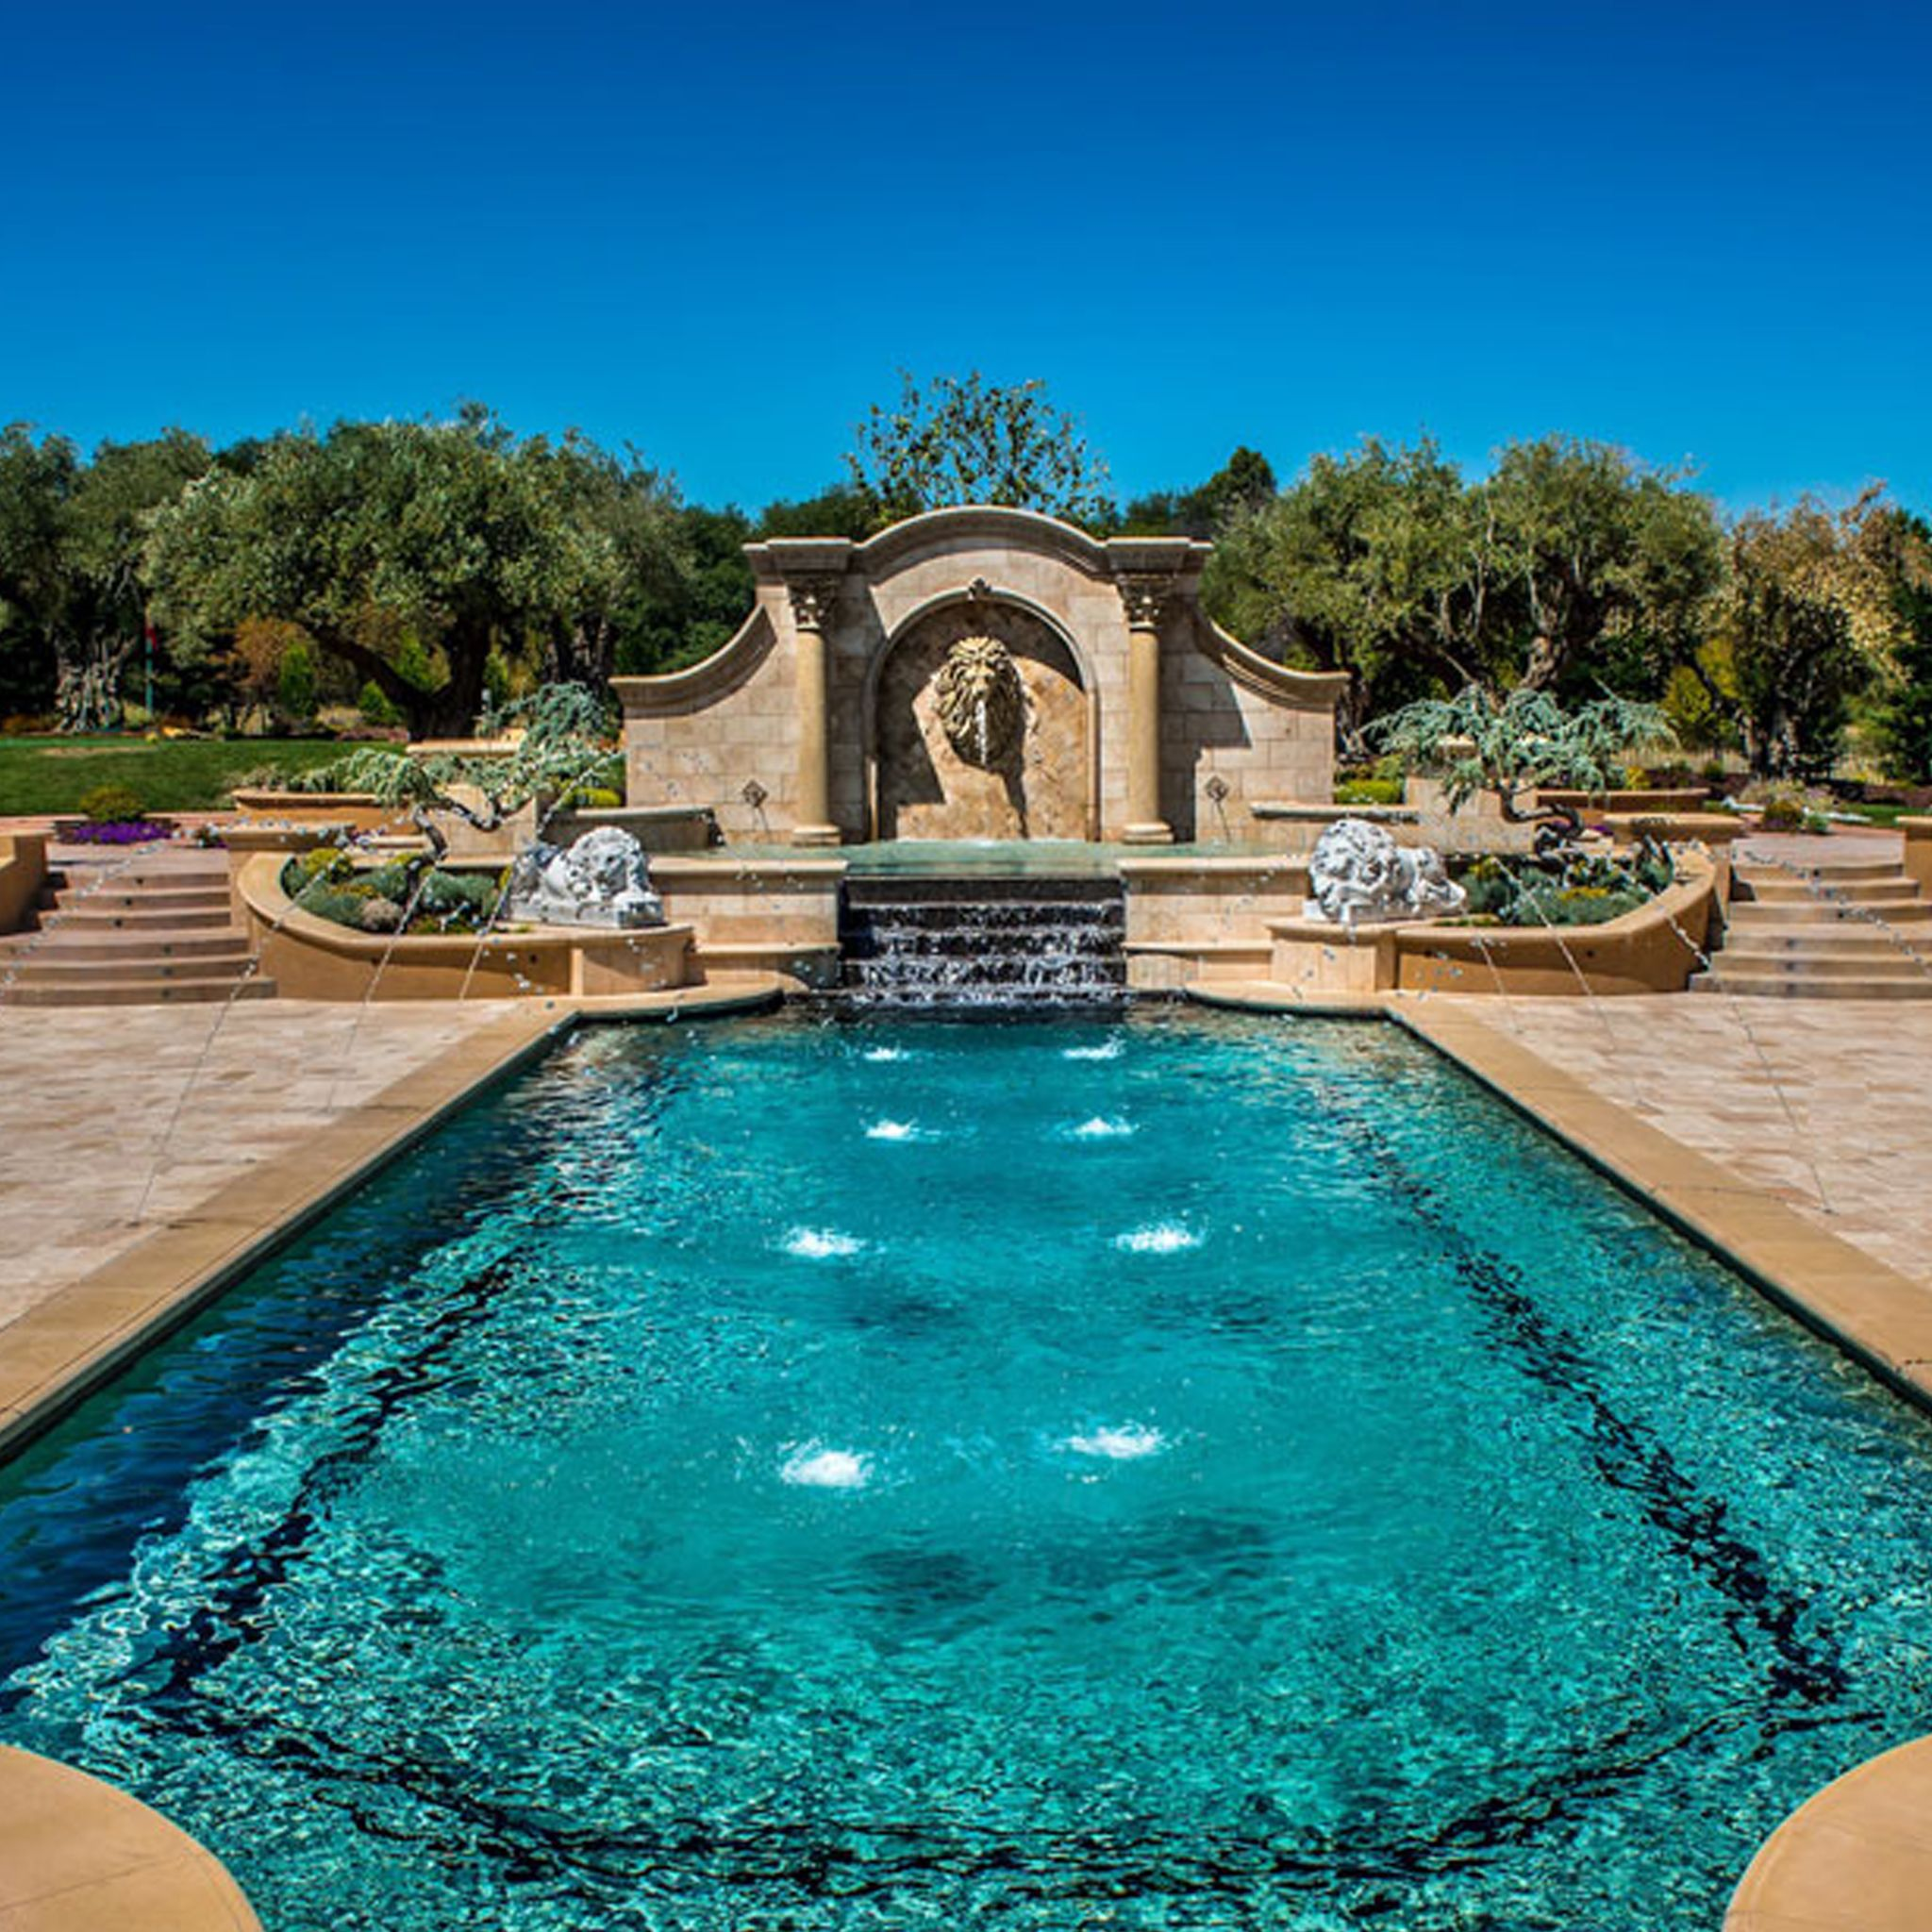 Classic Pool With A Lion Wall Fountain | Outdoor Fountains In 2019